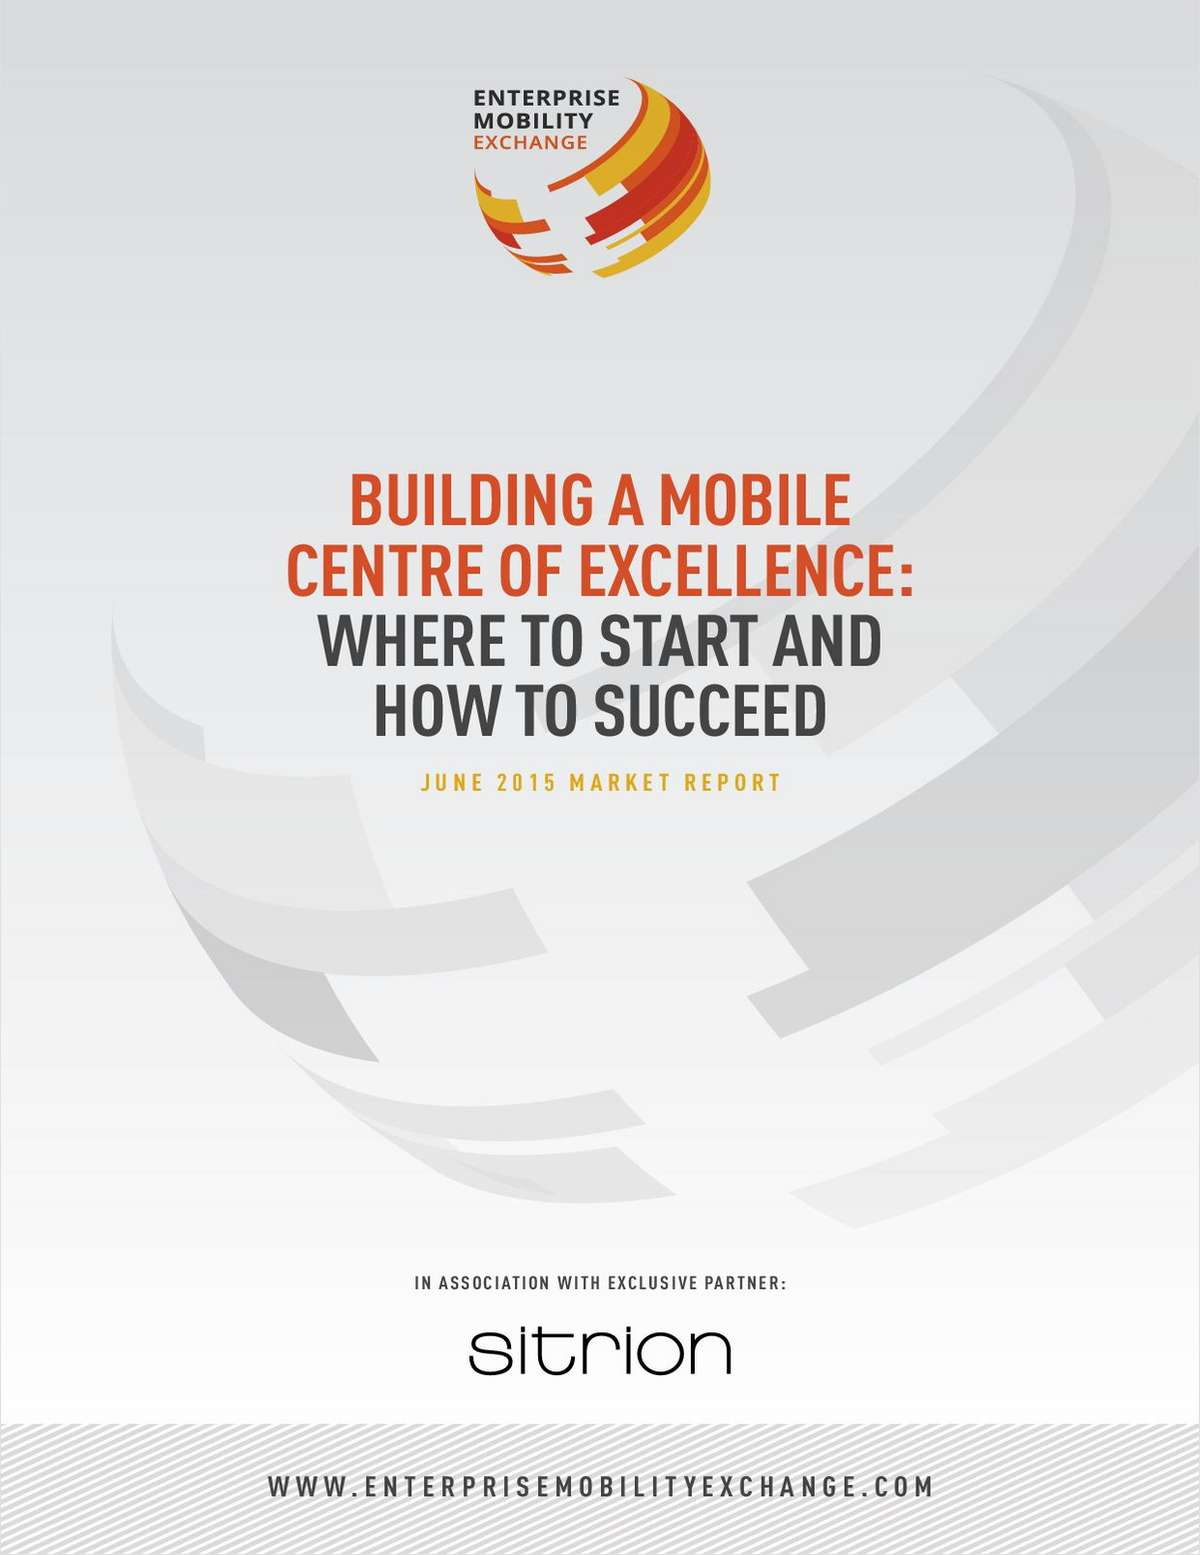 How to Build a Mobile Center of Excellence